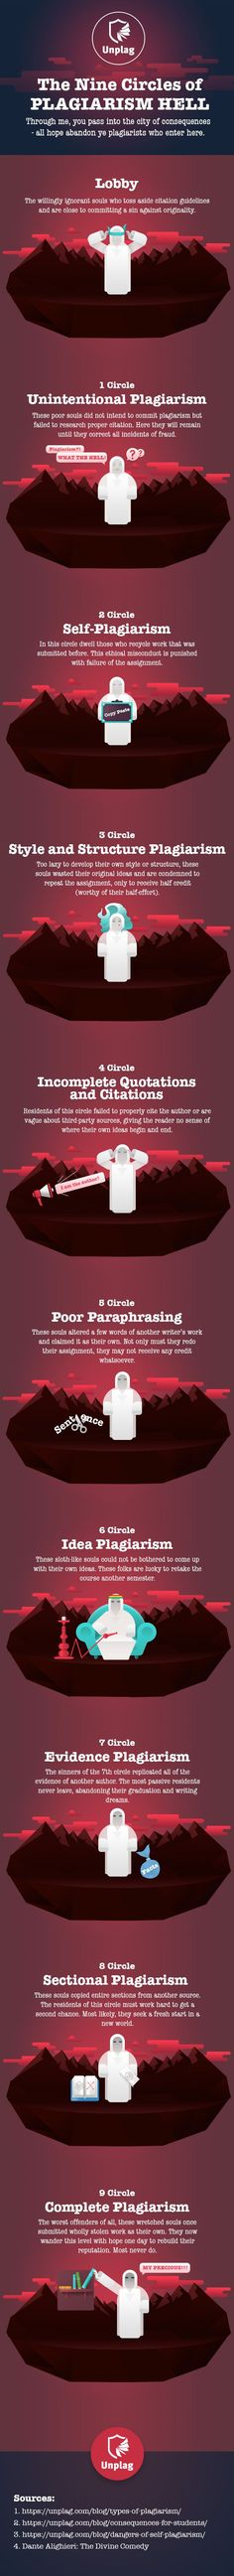 What Awaits Every Cheater in Plagiarism Hell? #infographic #internet #Plagiarism